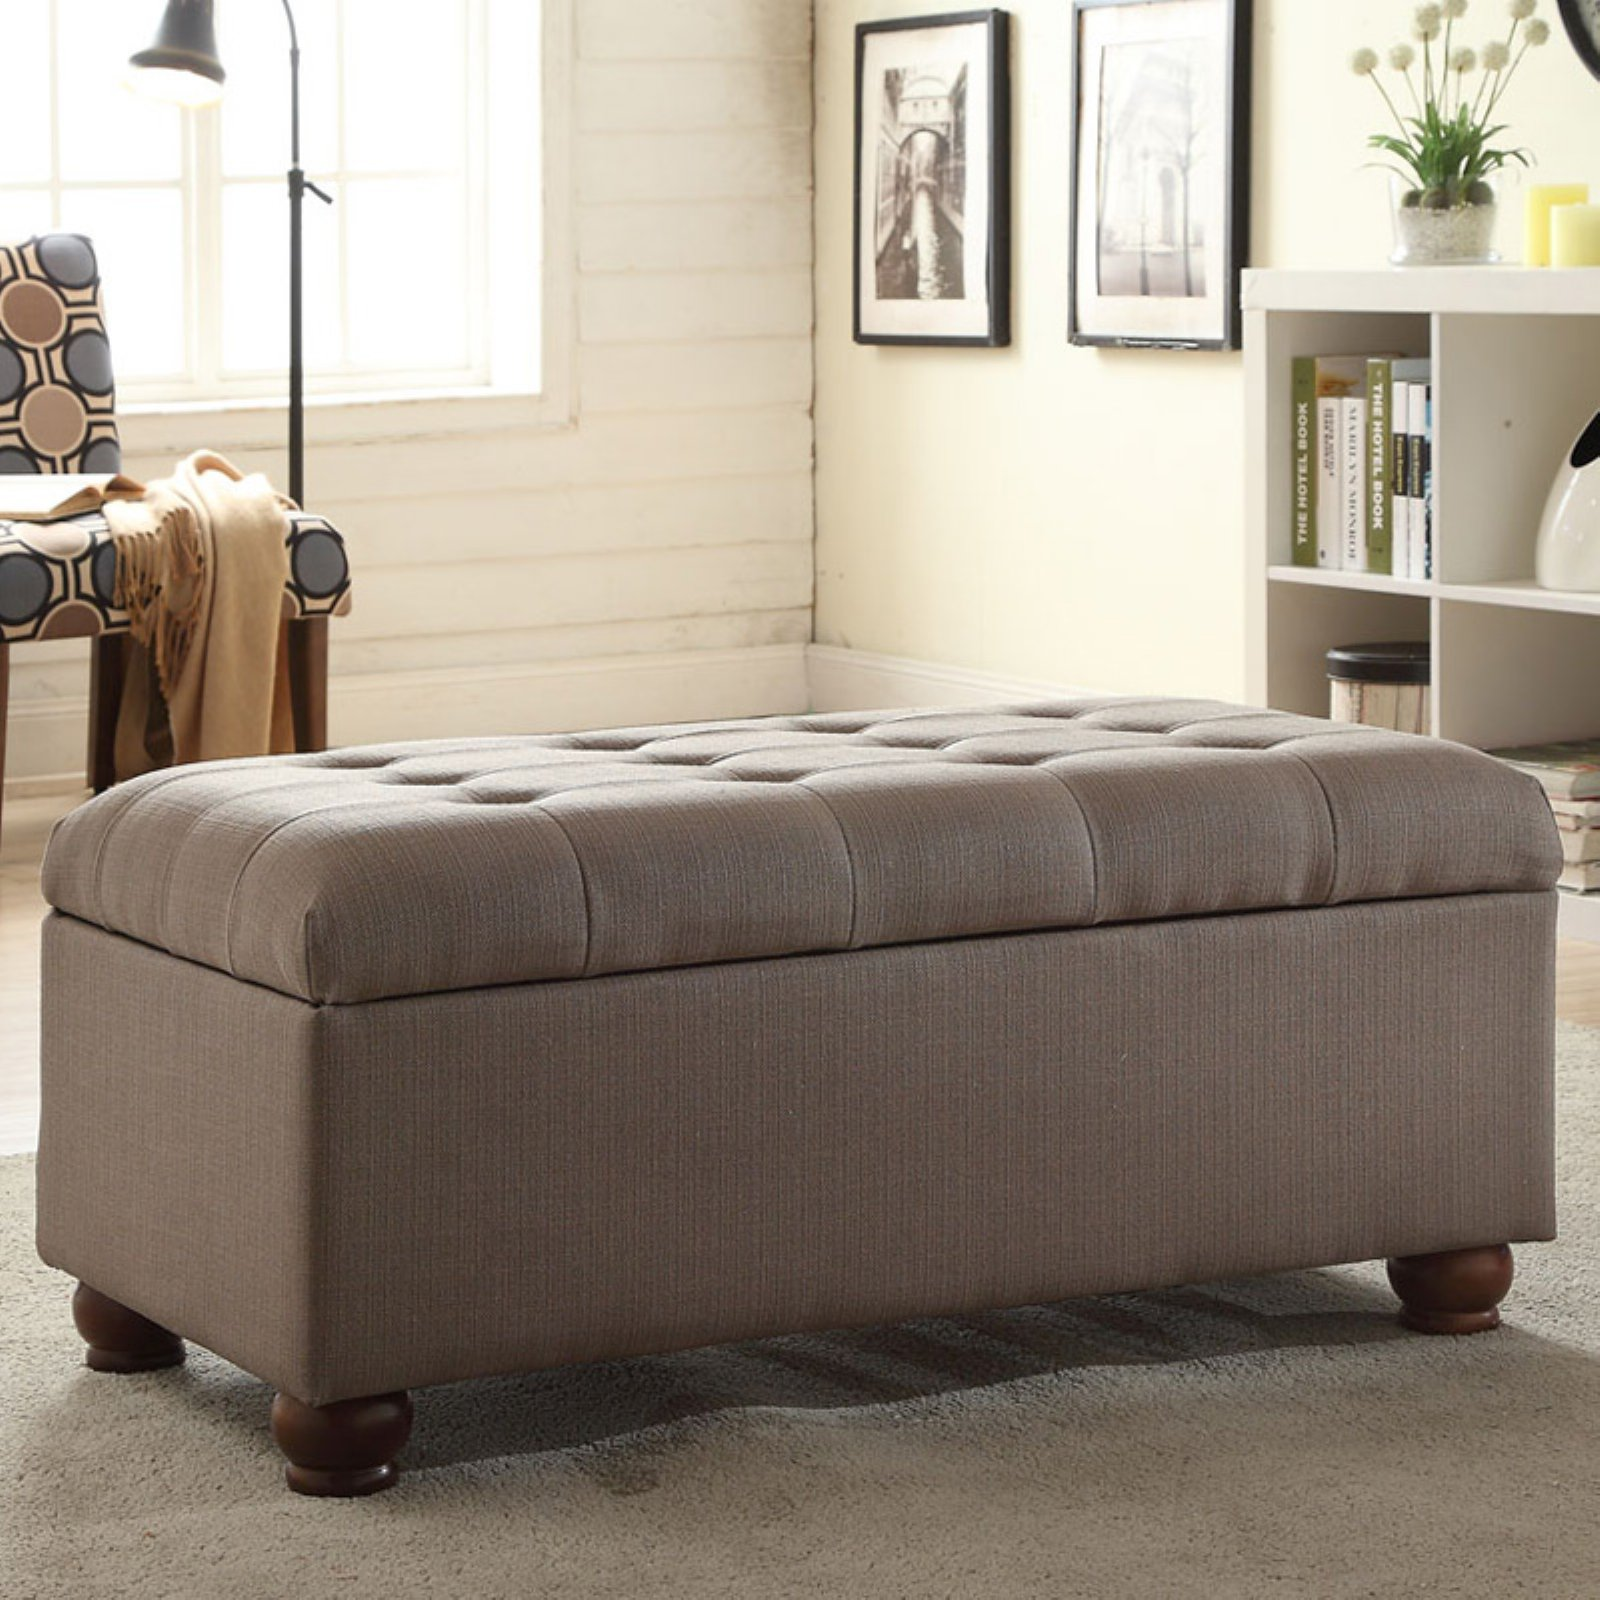 Kinfine USA Large Tufted Storage Bench